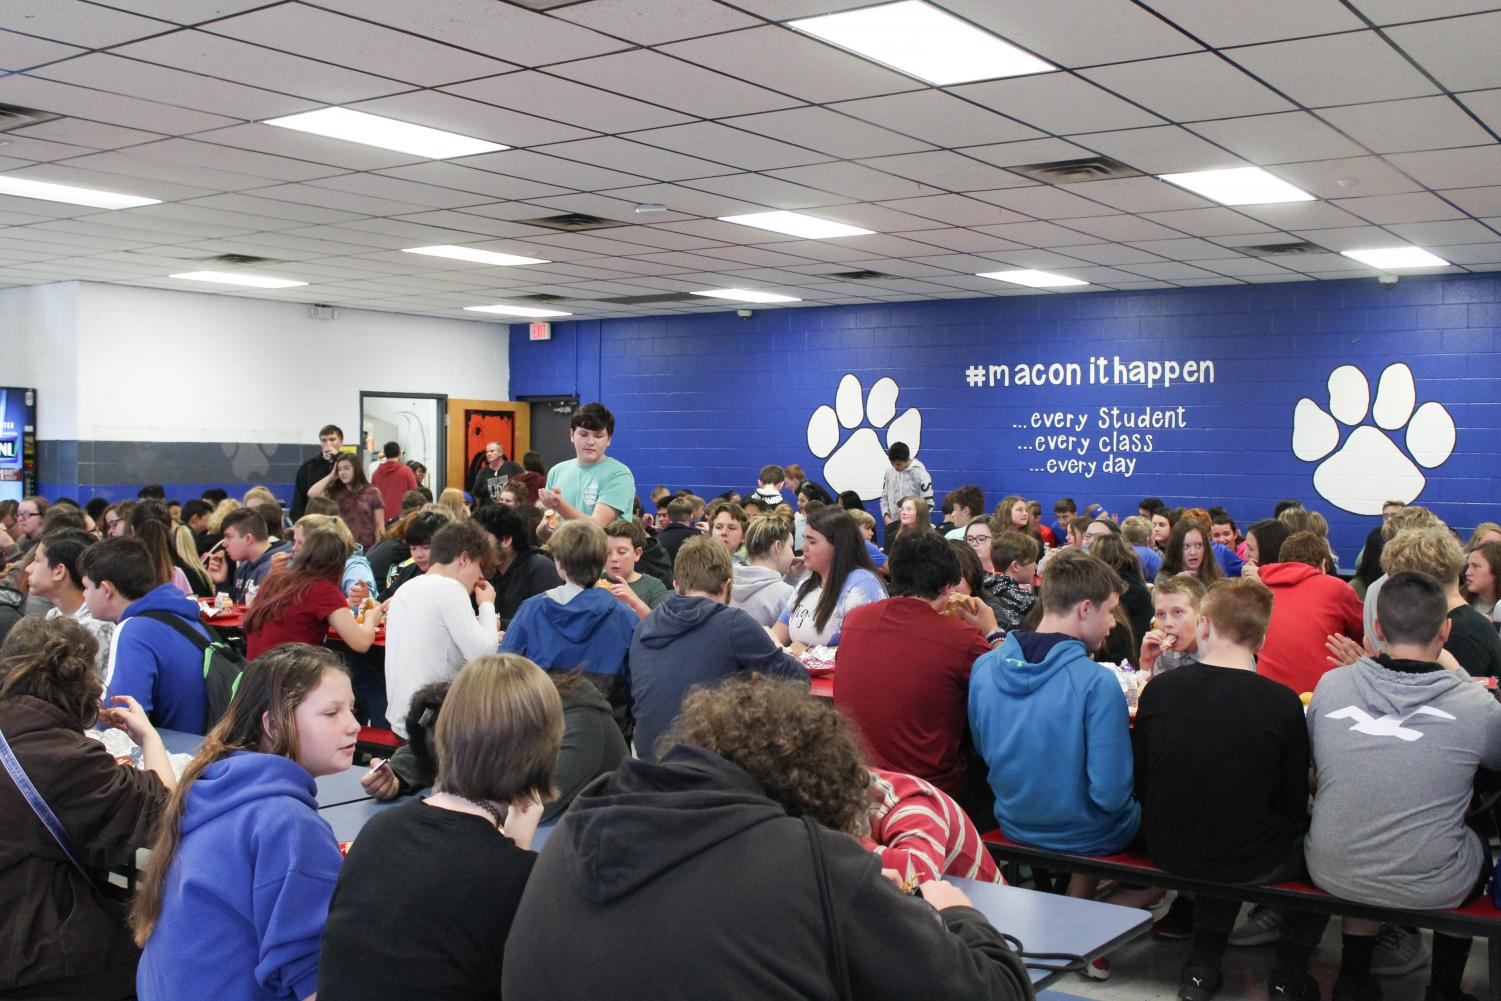 Overcrowding and Rushed Lunches Causing Issues for Students